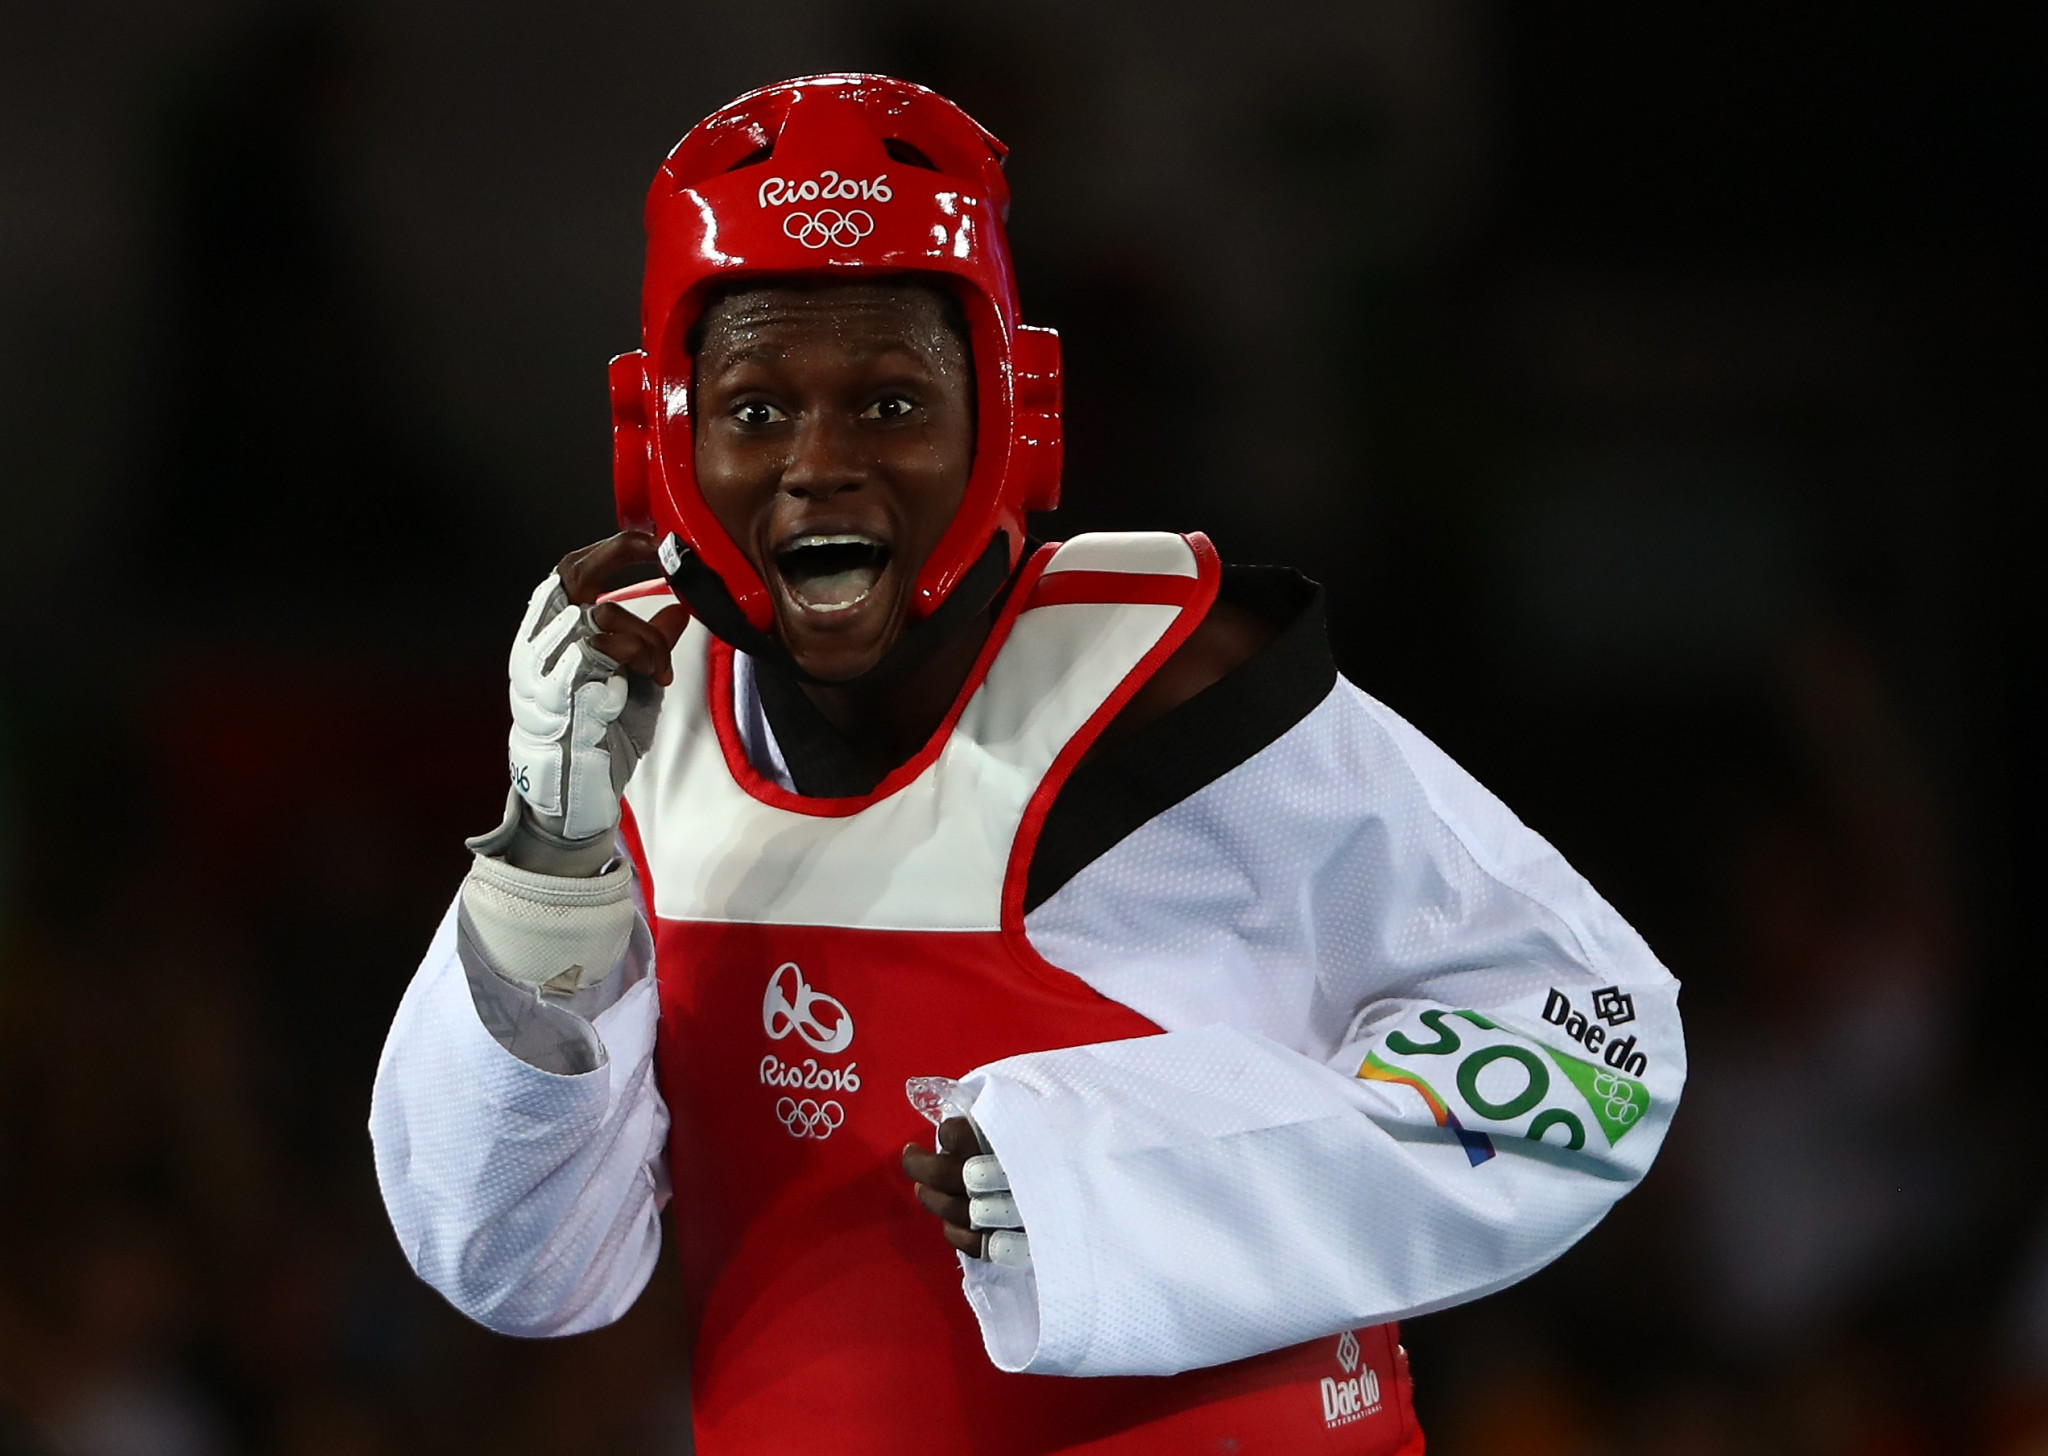 Ruth Gbagbi won Olympic bronze at Rio 2016 ©Getty Images